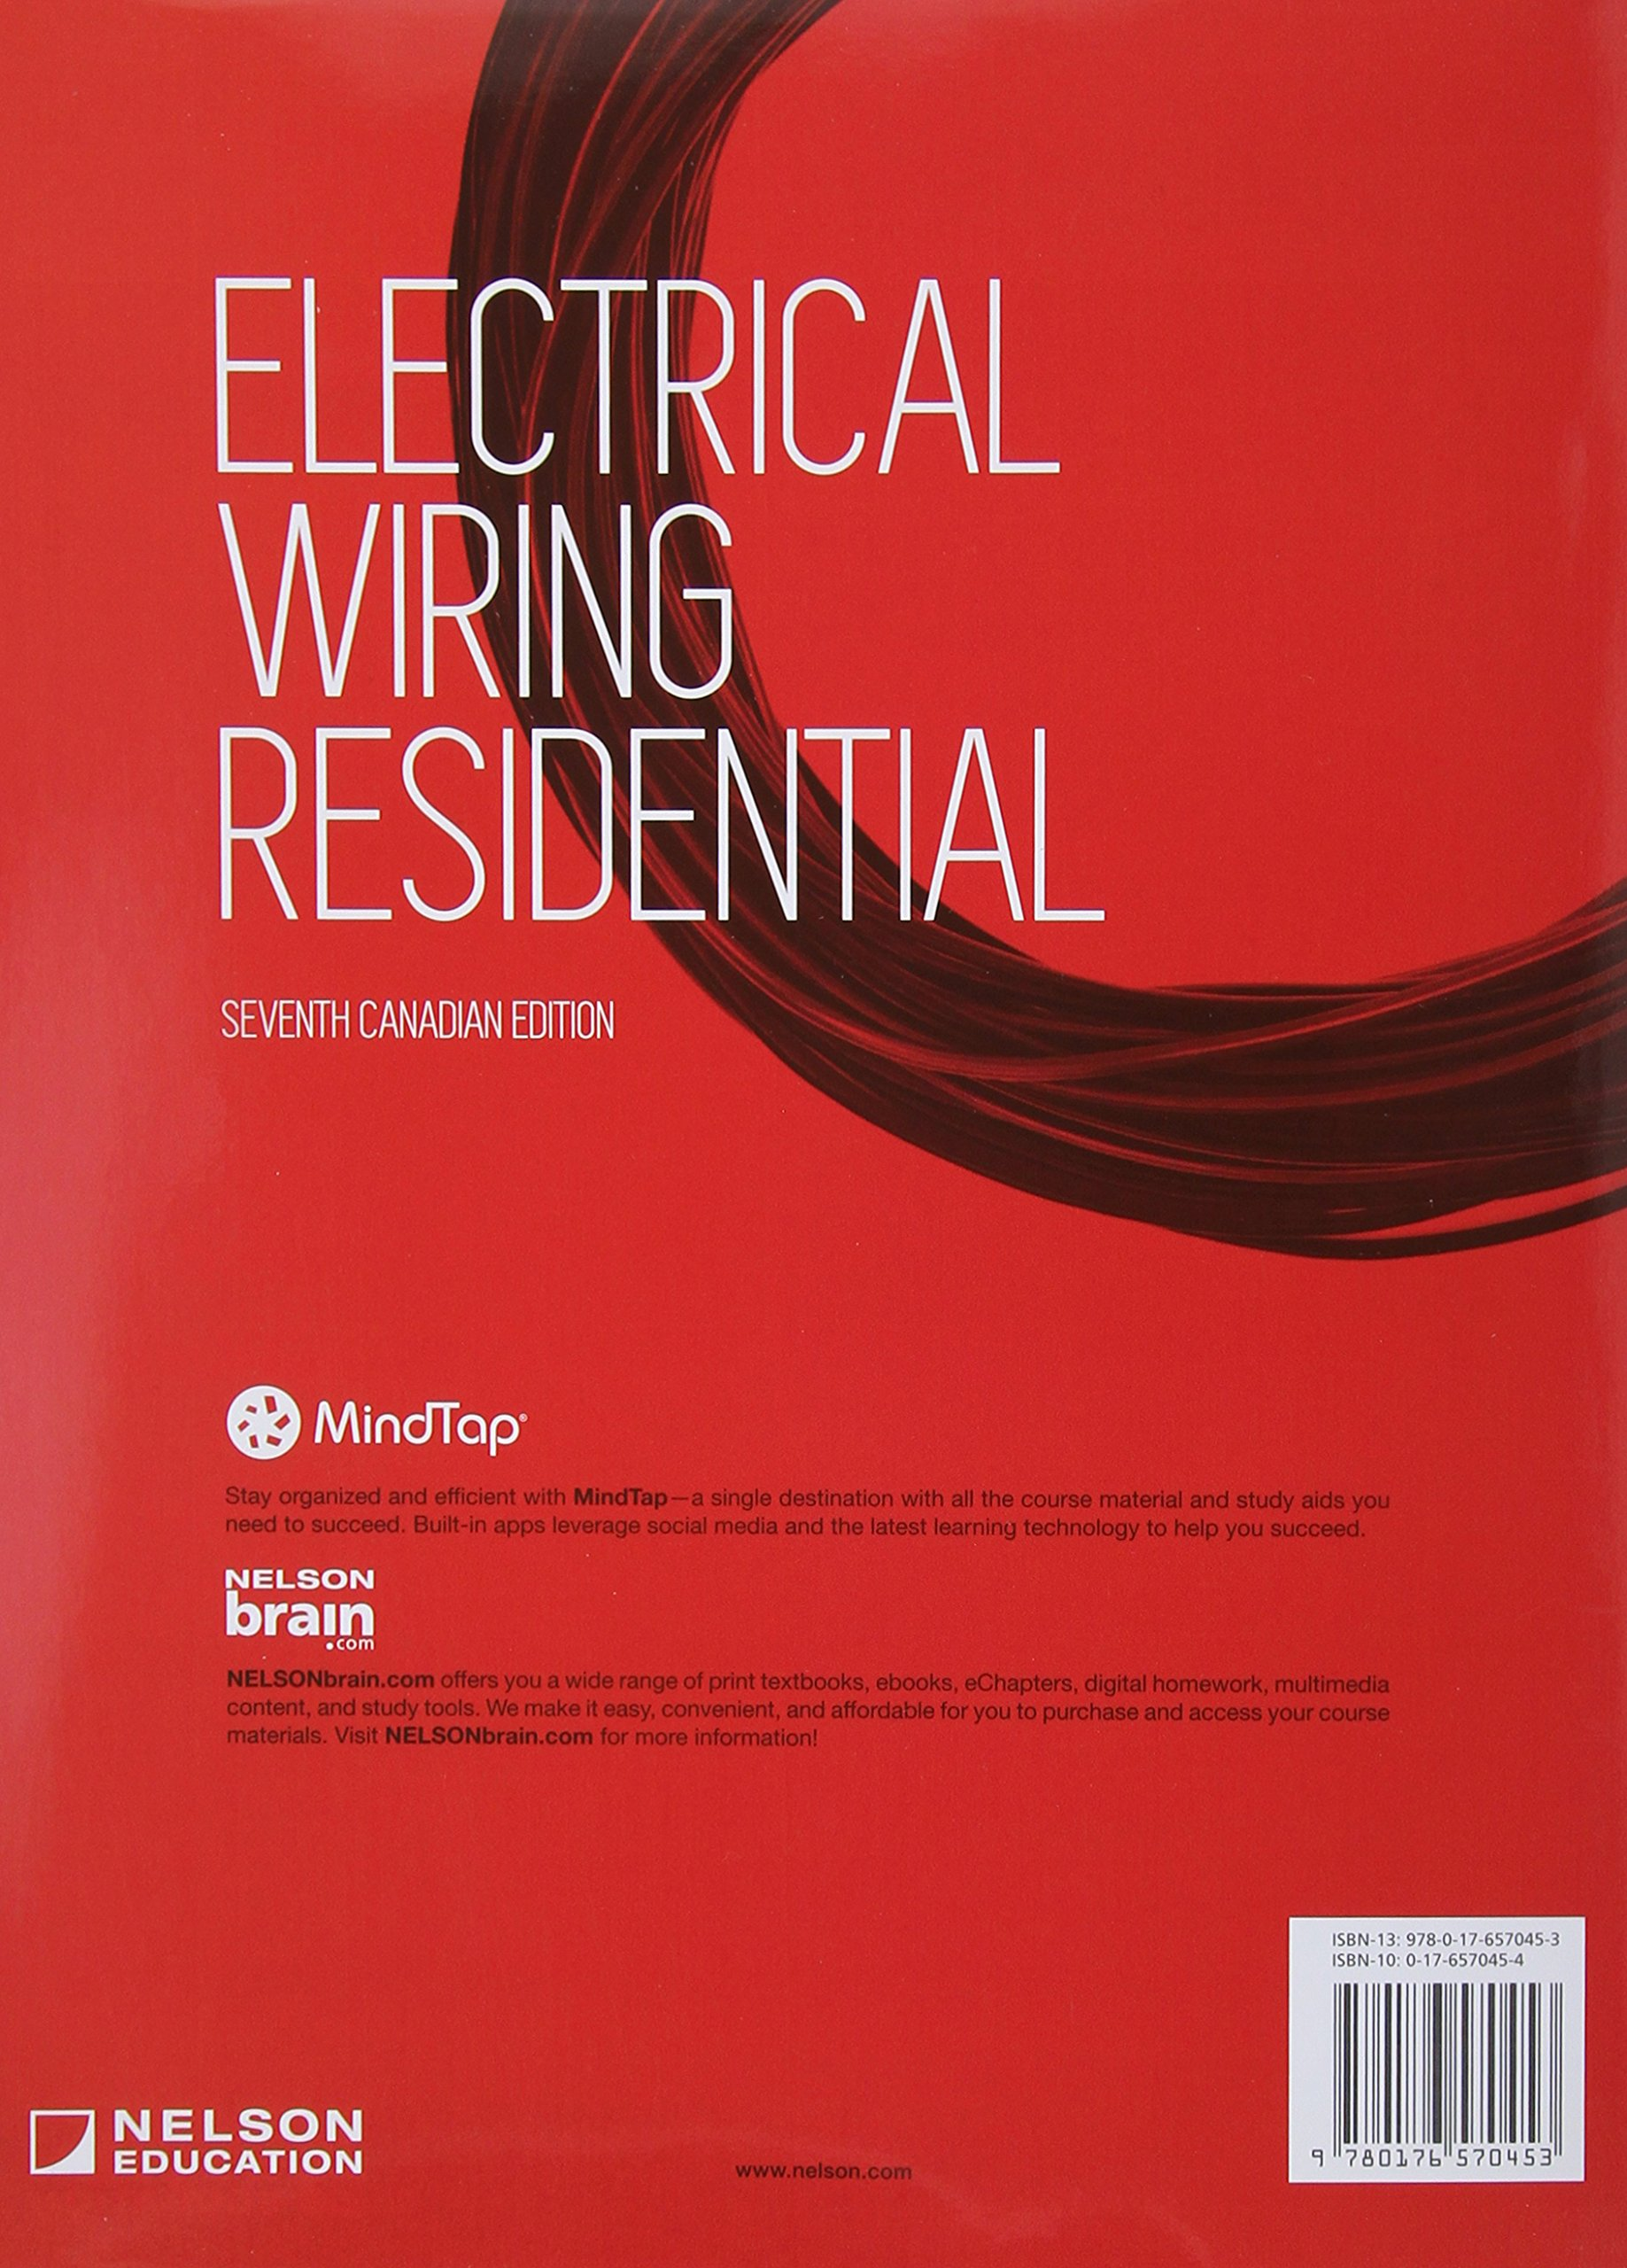 Pleasing Electrical Wiring Residential 9780176570453 Amazon Com Books Wiring Cloud Toolfoxcilixyz